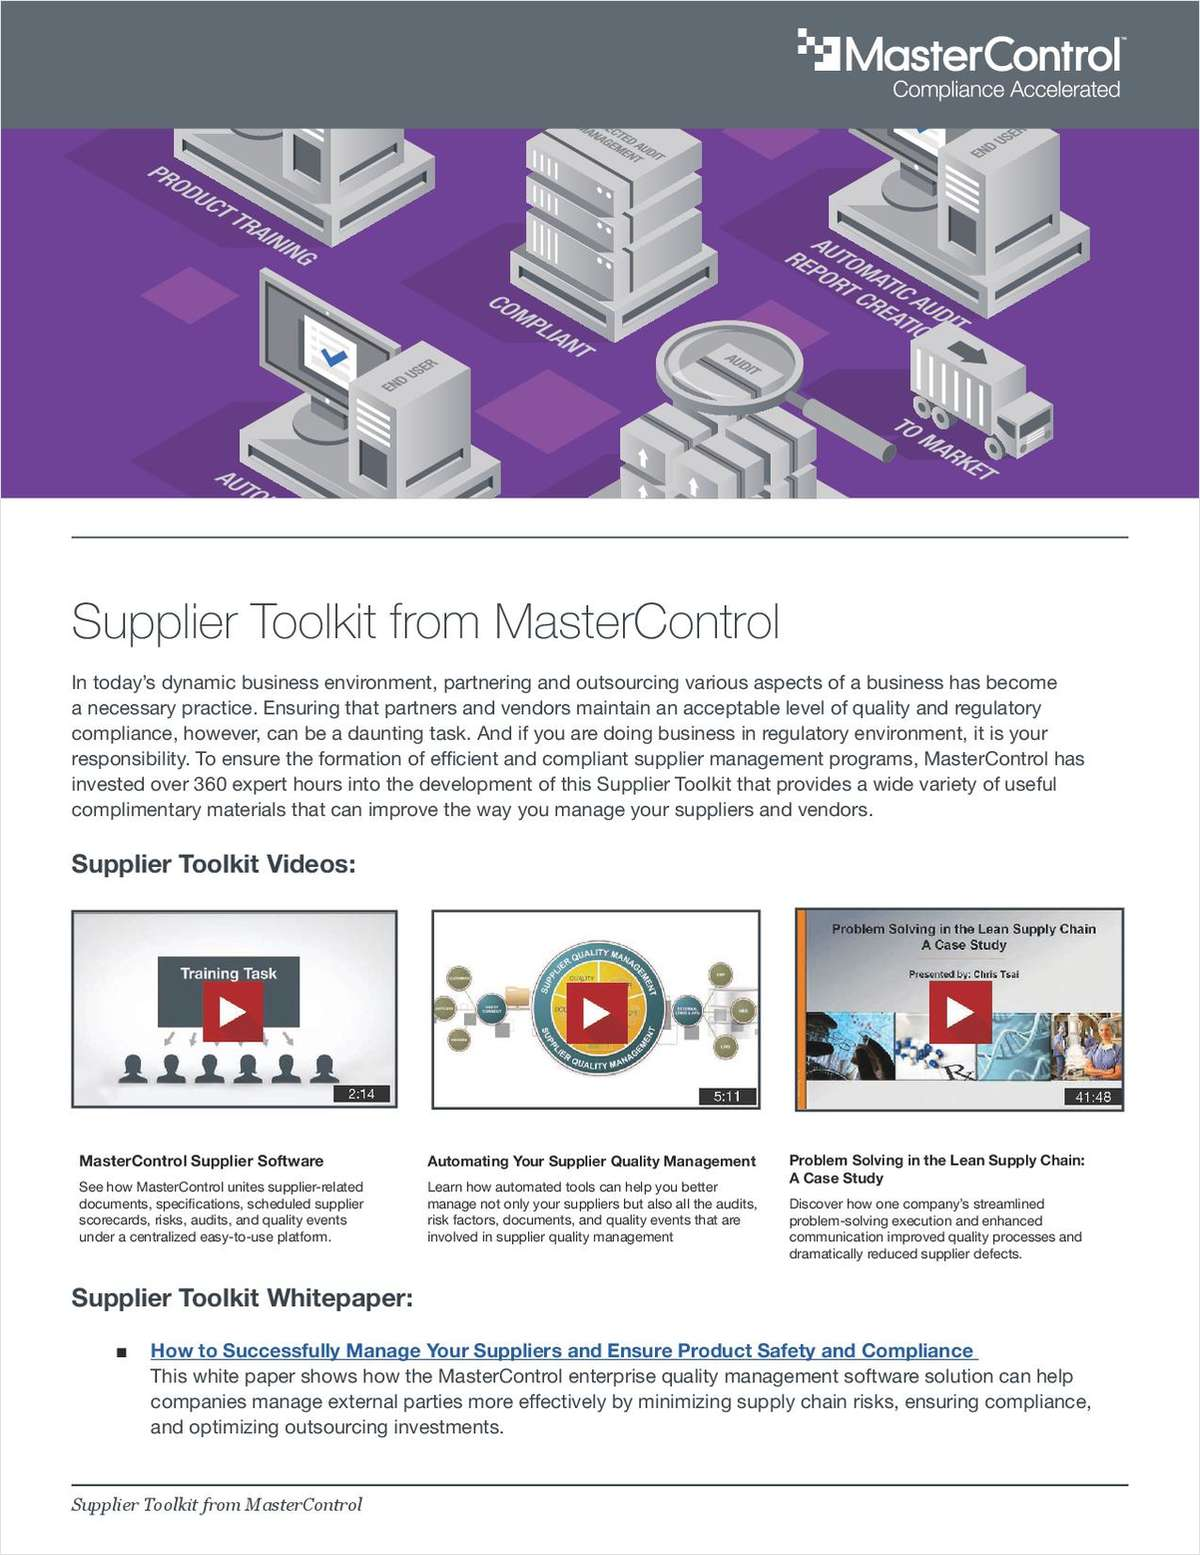 12 Free Resources to Boost Your Supplier Management